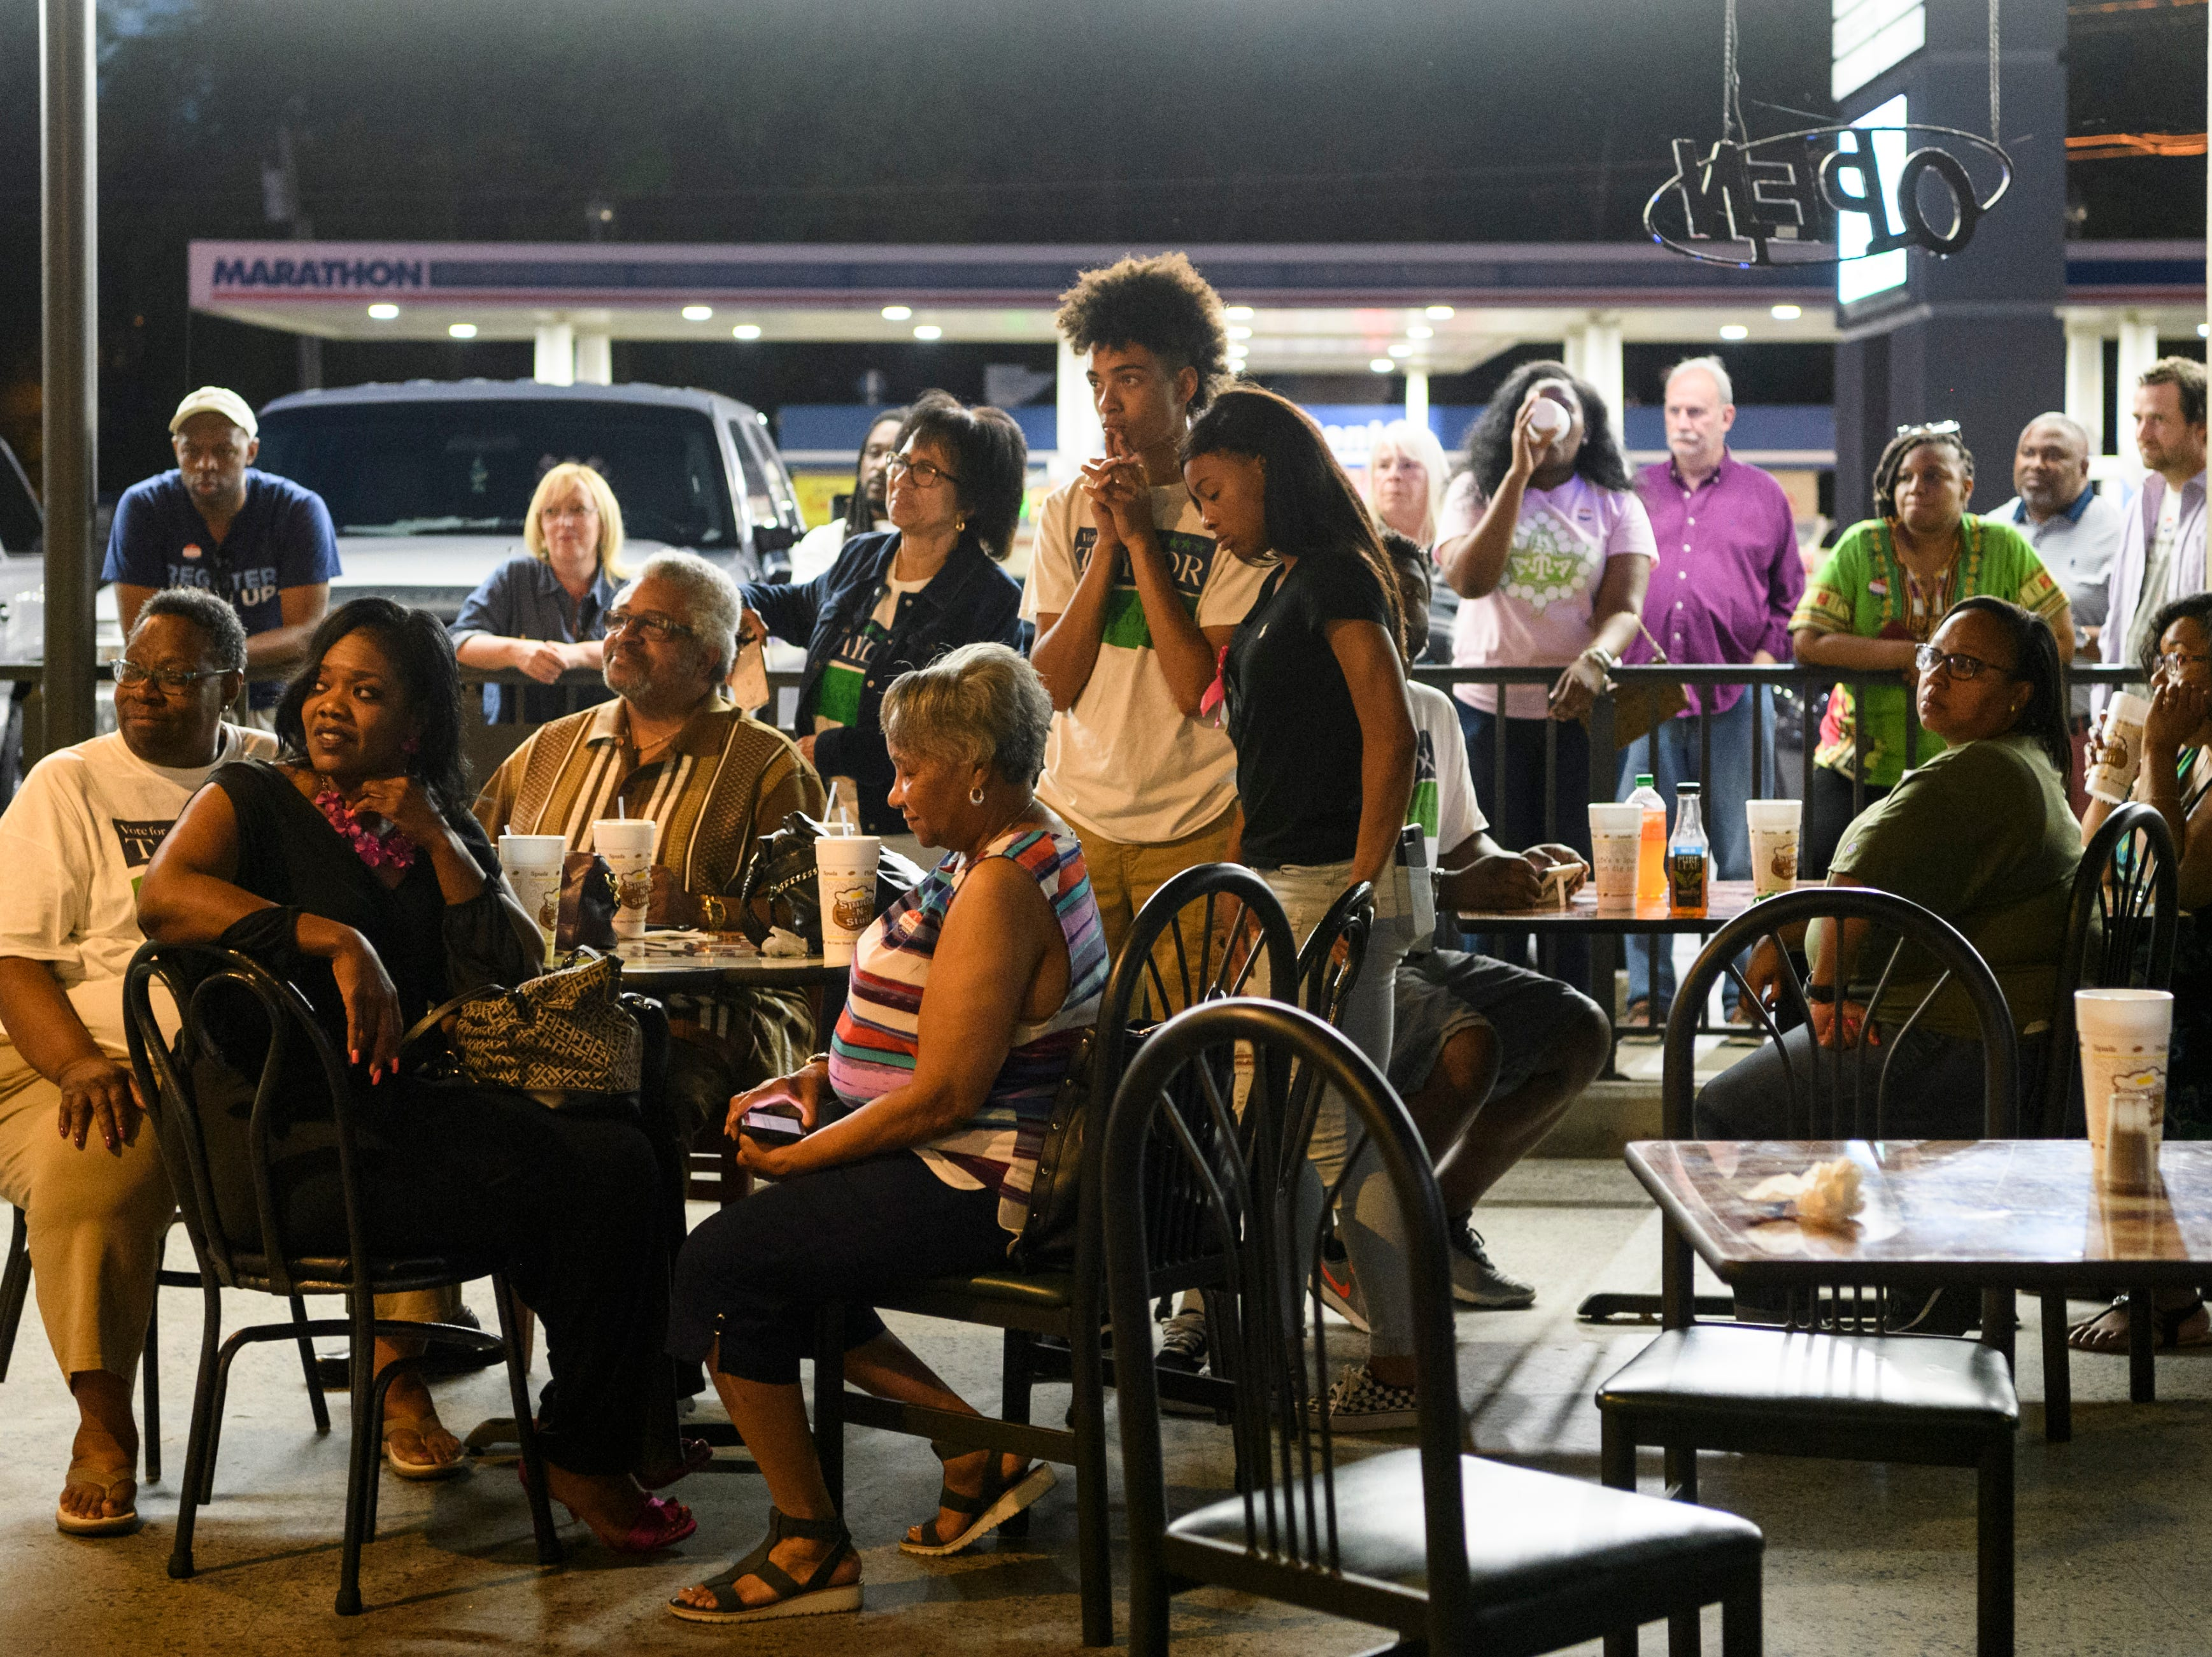 The crowd attending a democratic primary election watch party at Spudz-N-Stuff on Washington Ave. listens to D'Angelo Taylor give his concession speech, Tuesday, May 7, 2019. Taylor lost by 46 votes in a contentious second ward city council race to 12-year incumbent Missy Mosby (not pictured).